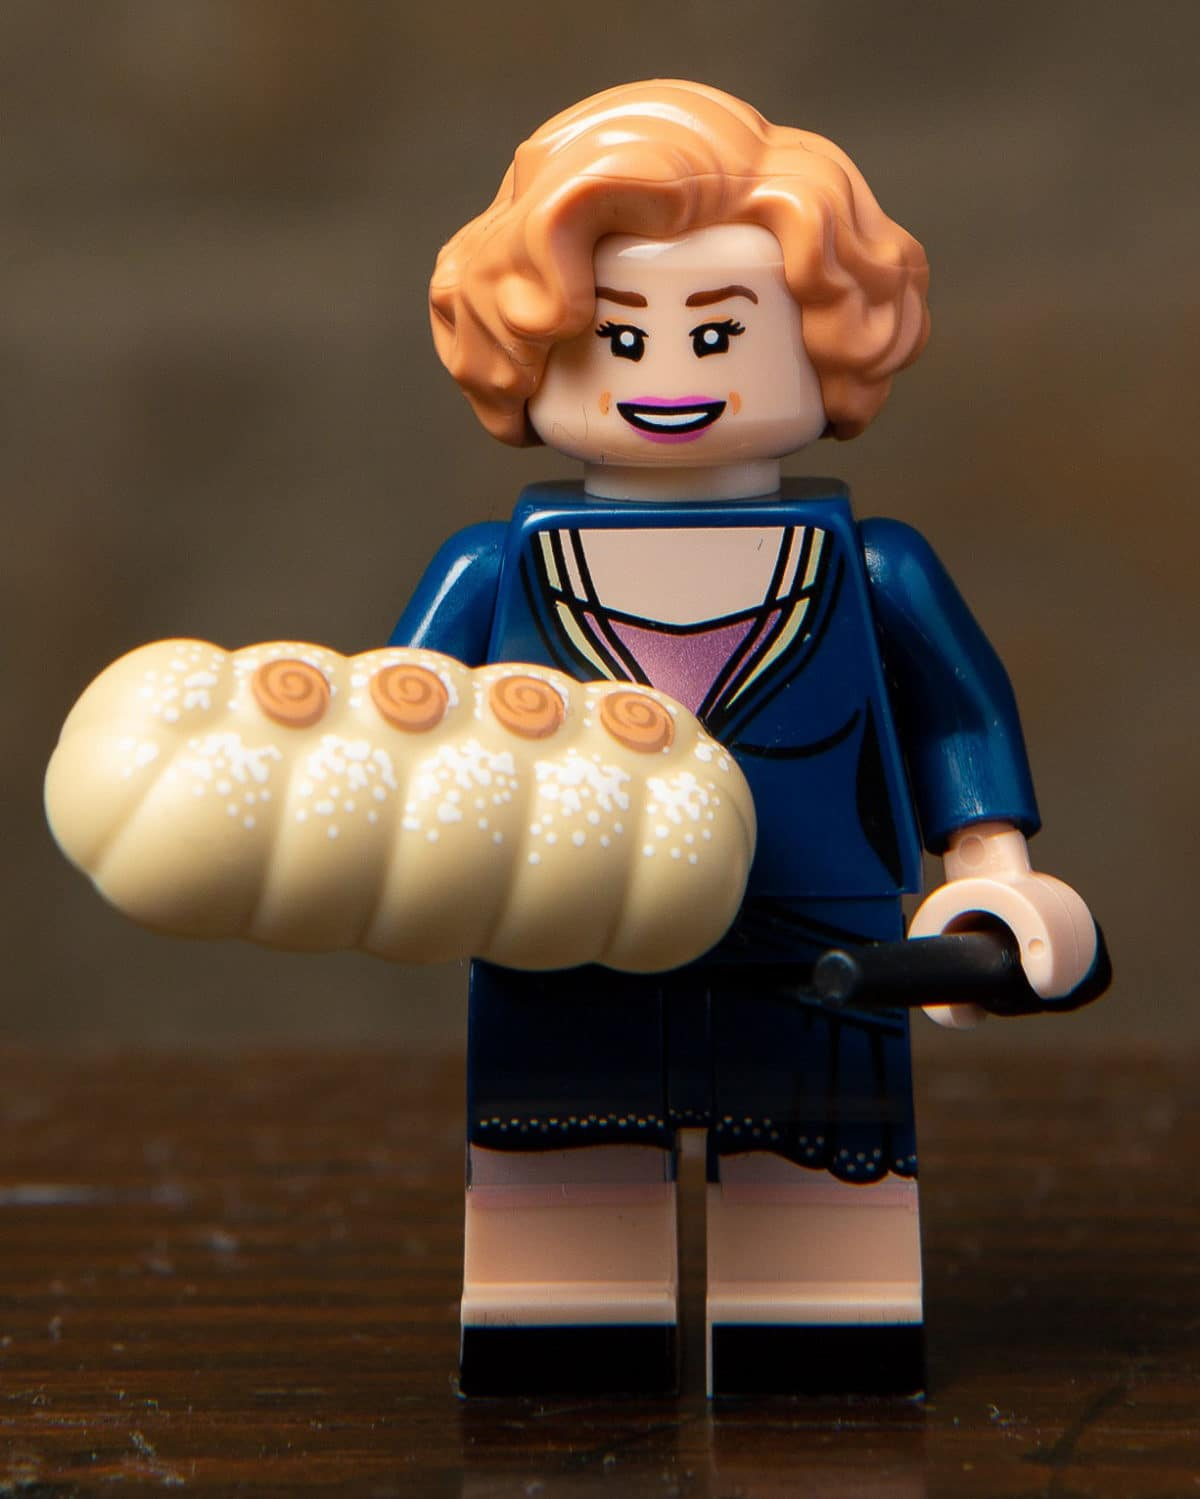 LEGO 71022 Queenie Goldstein